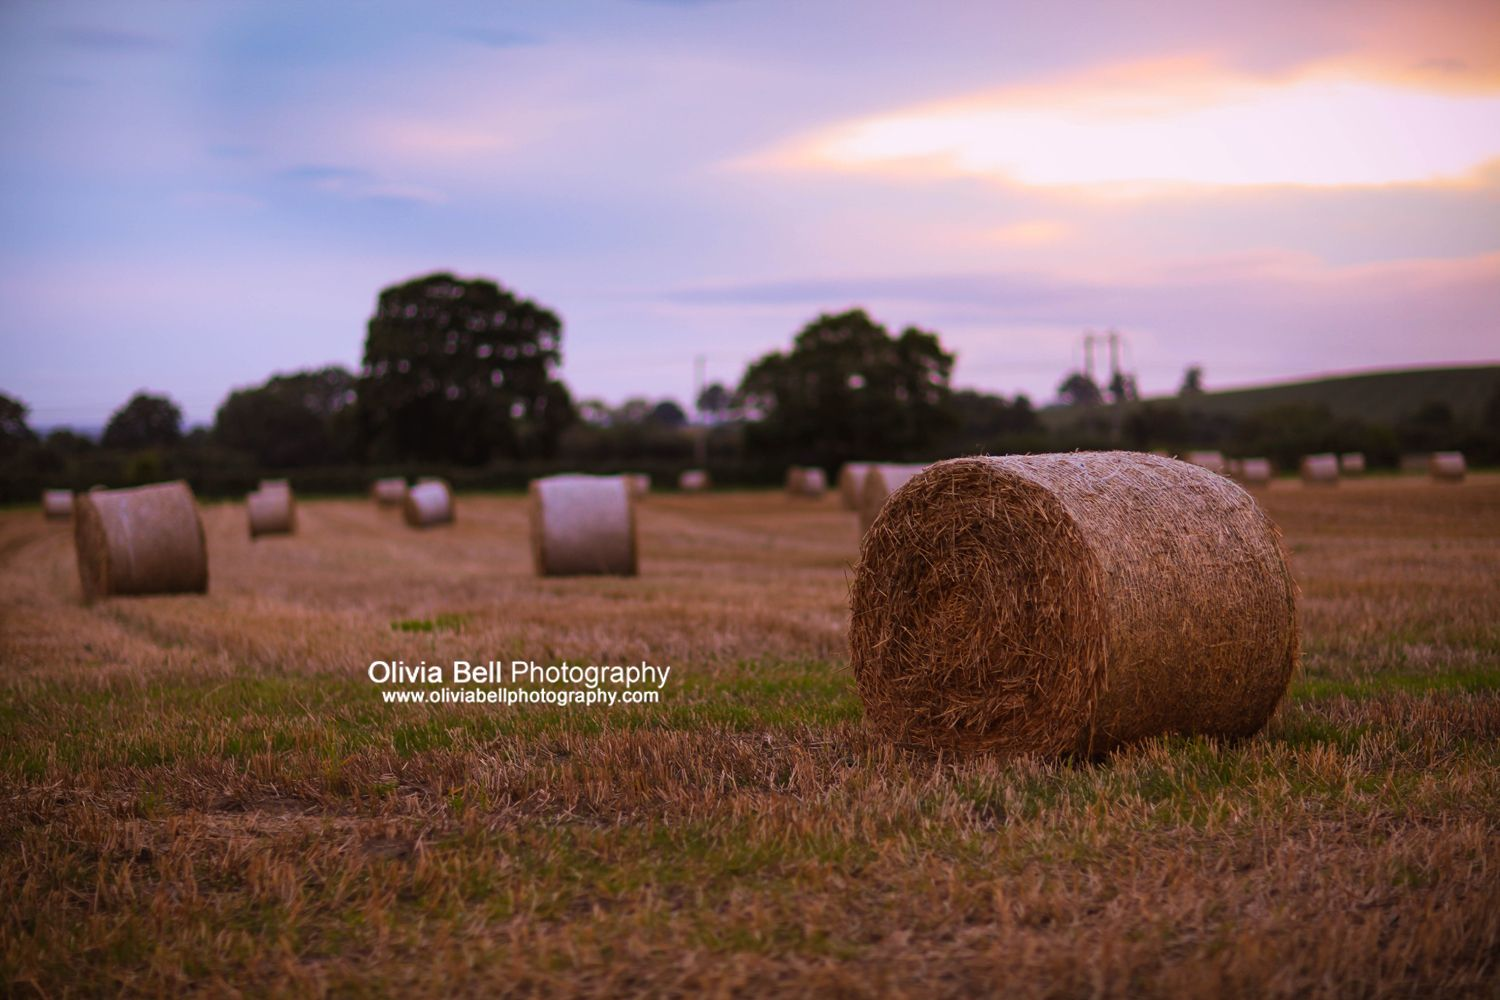 Harvested Straw Bales. Available as Wall Art (Canvas, Poster, Mounted Print, Acrylic, Aluminium and Gloss Print: http://thebellsistersart.com/shop/harvested-straw-bales/